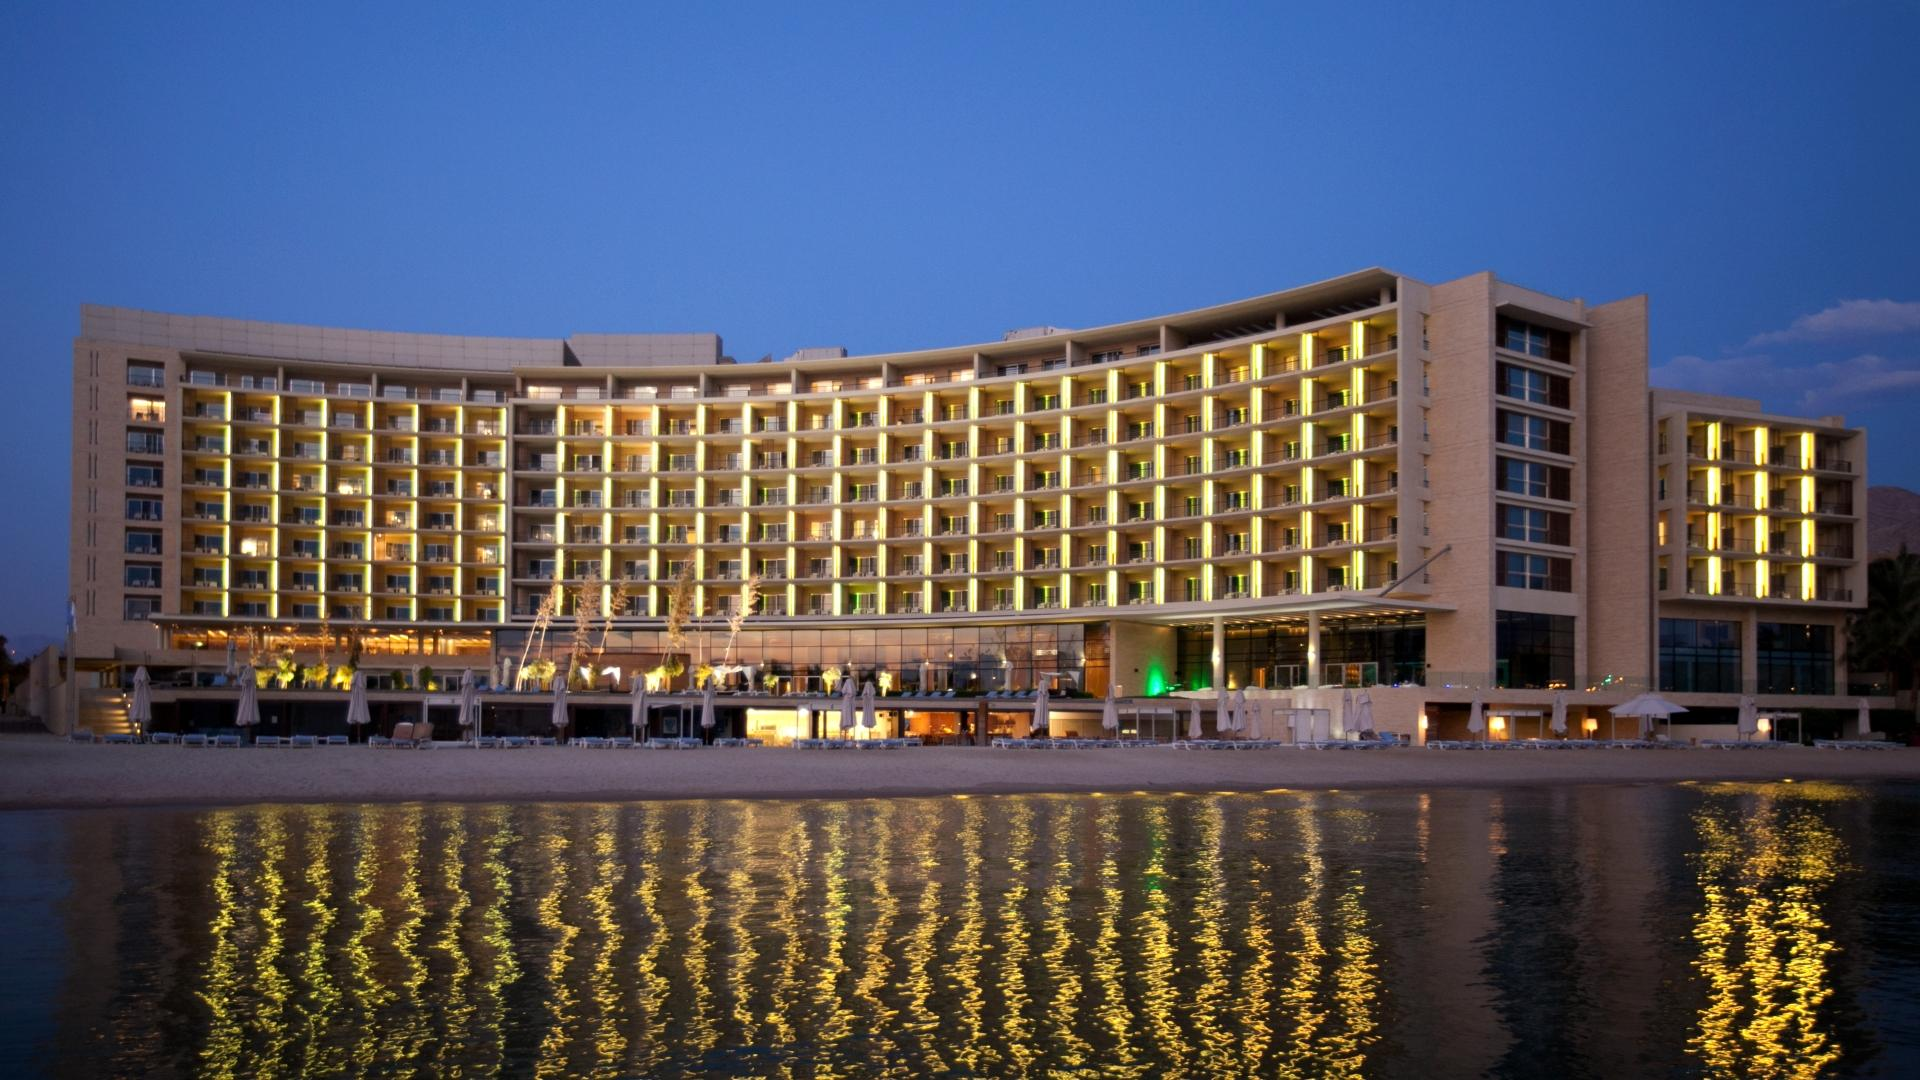 Kempinski Hotels is the Europe's oldest luxury hotel group